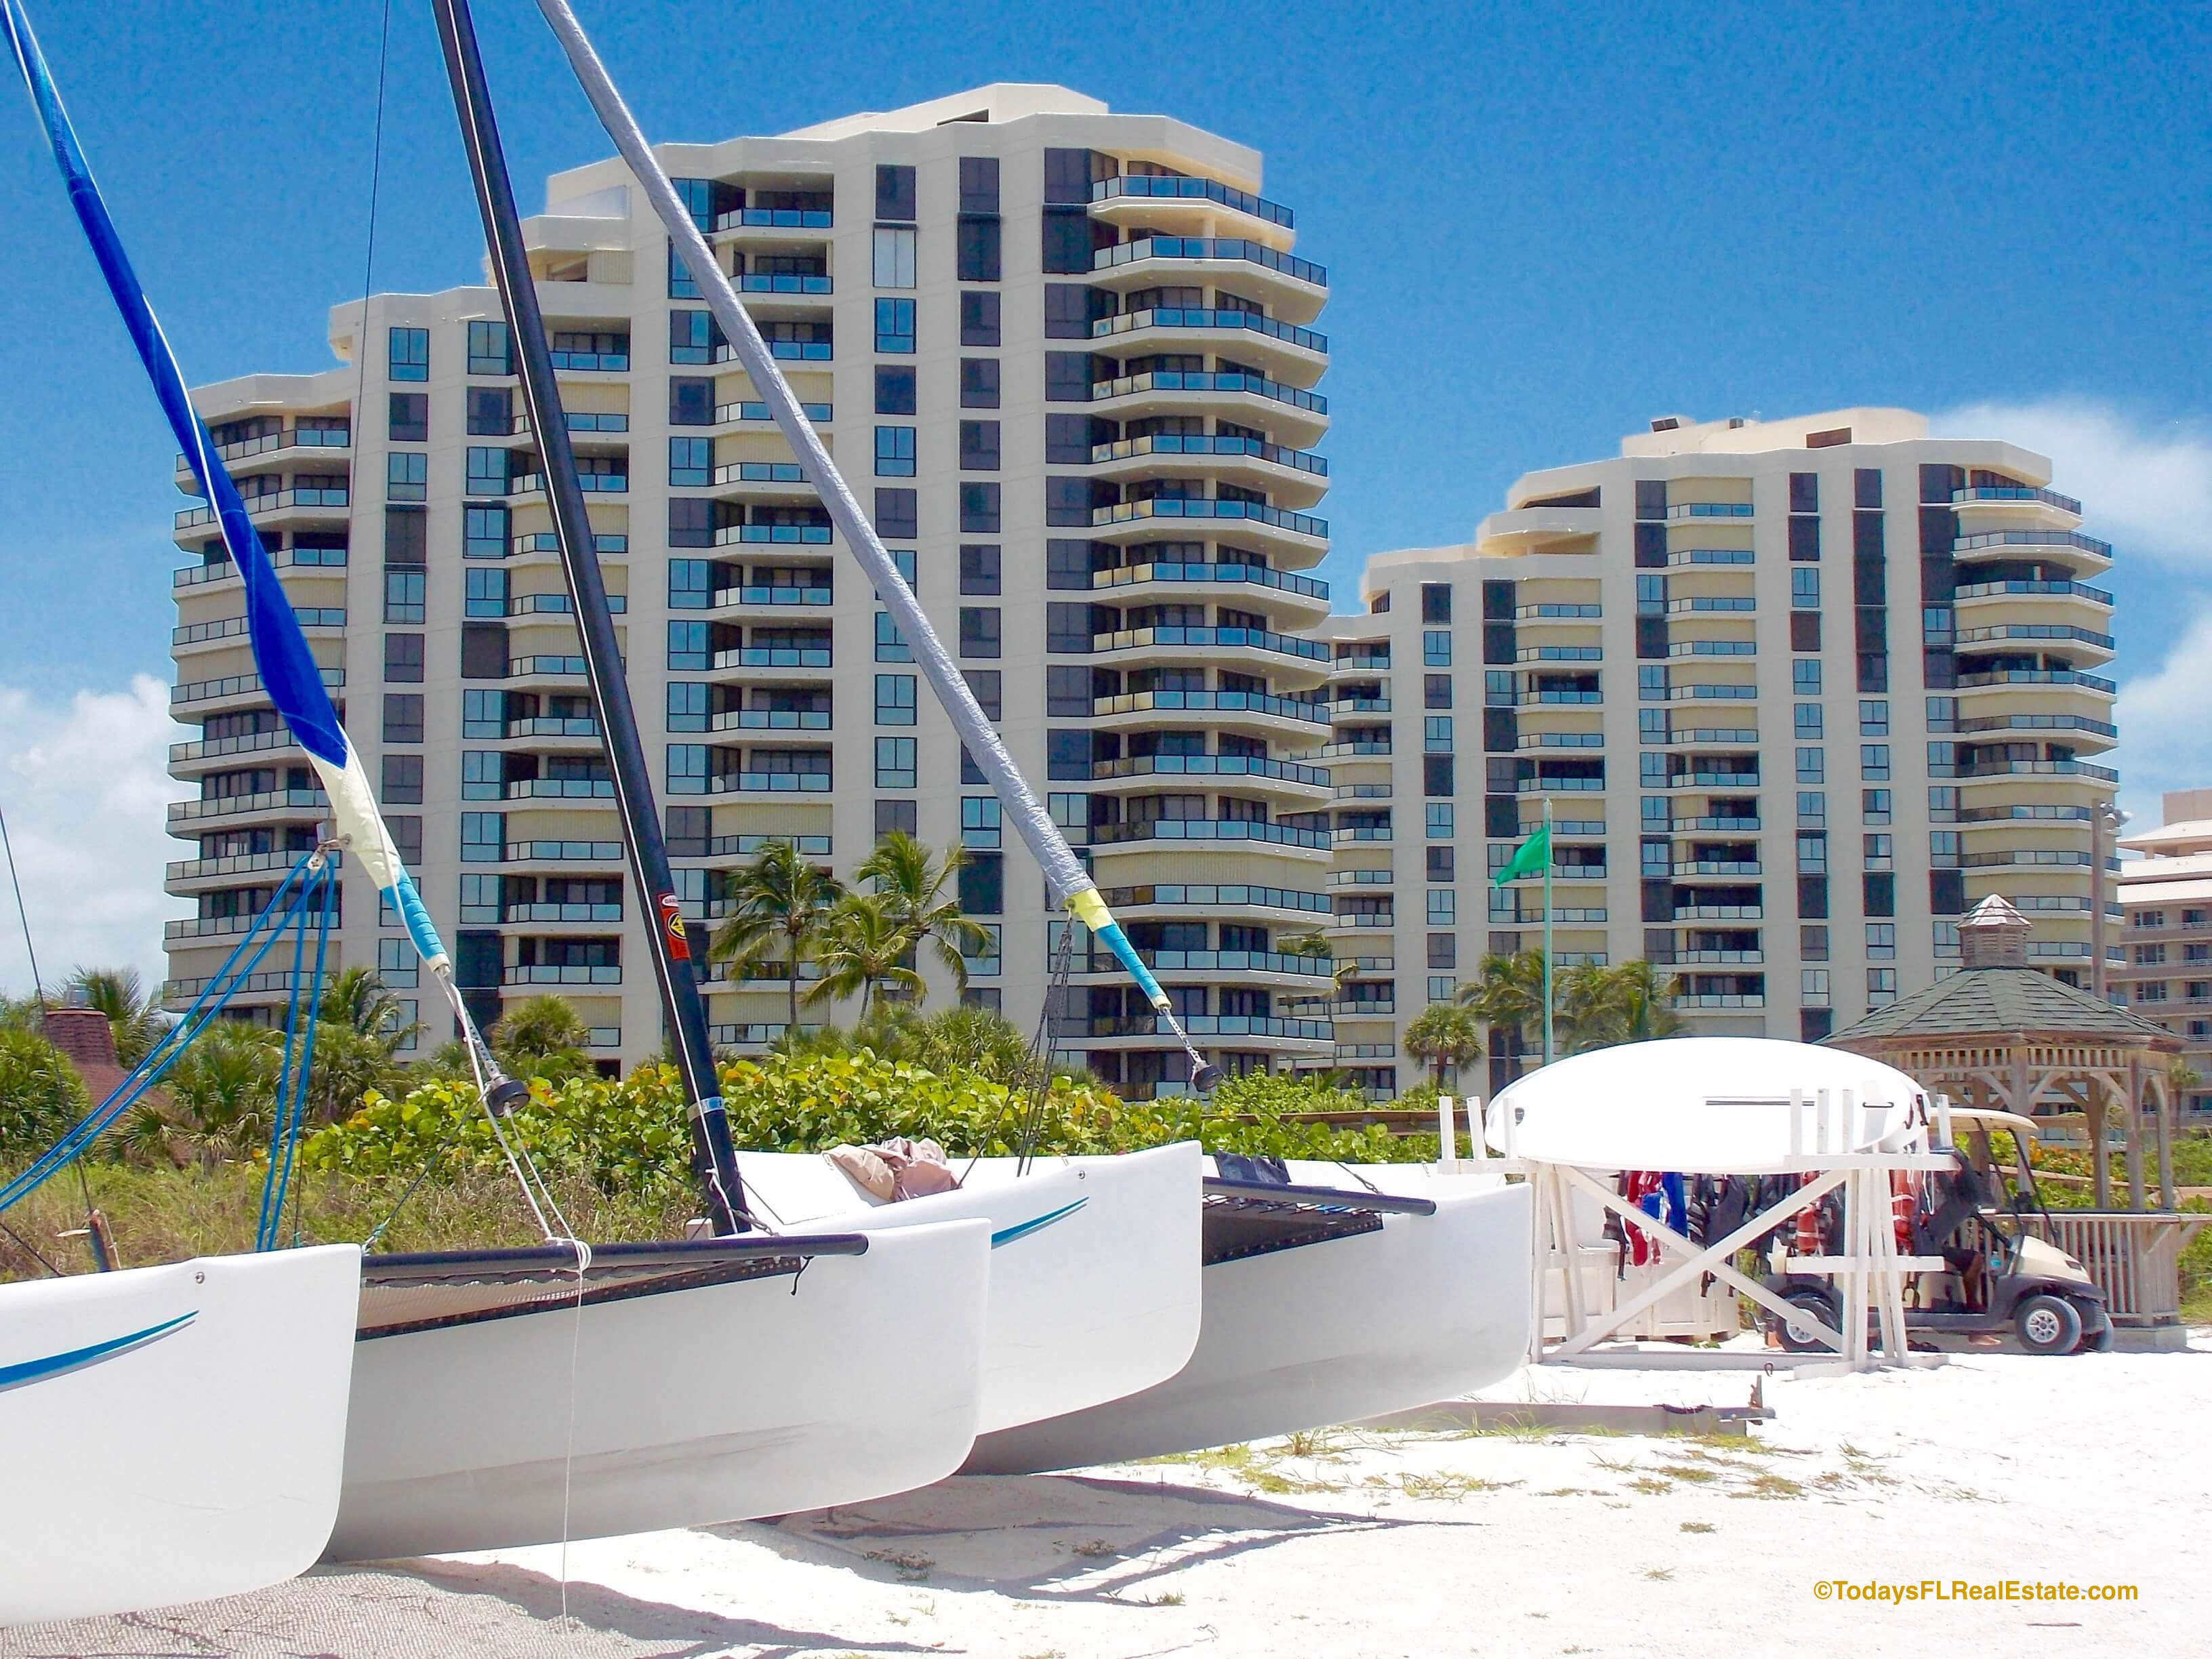 Marco Island Condos, Marco Island Condos for Sale, Beachfront condos for sale Marco Island